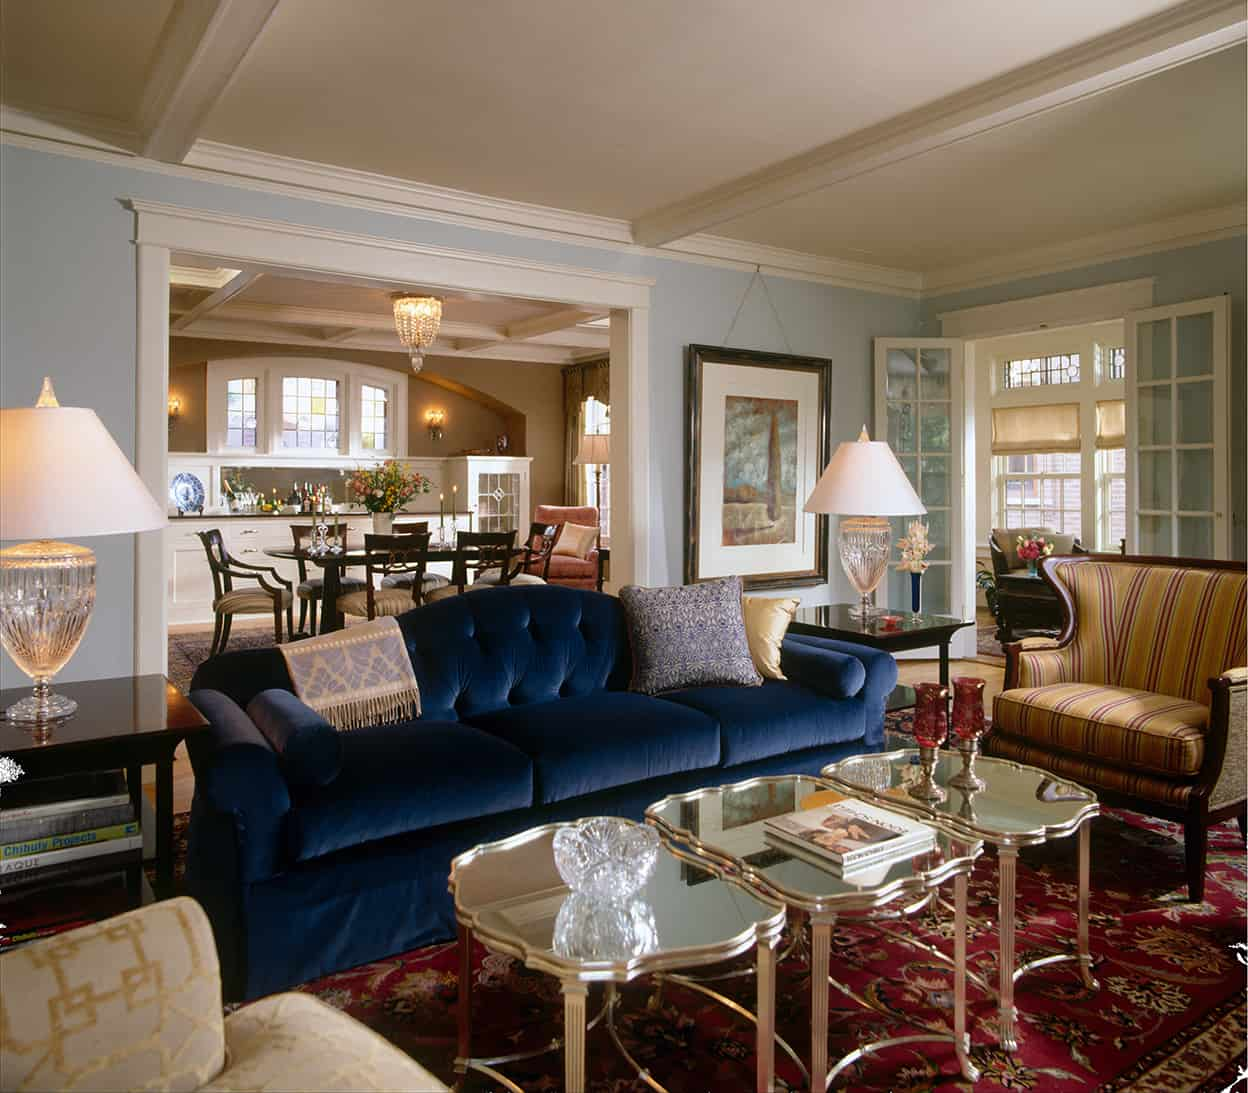 Working Within The Original Footprint, We Remodeled The Entire House And  Provided Full Interior Design Services To Reawaken The Homeu0027s Historic  Charm.